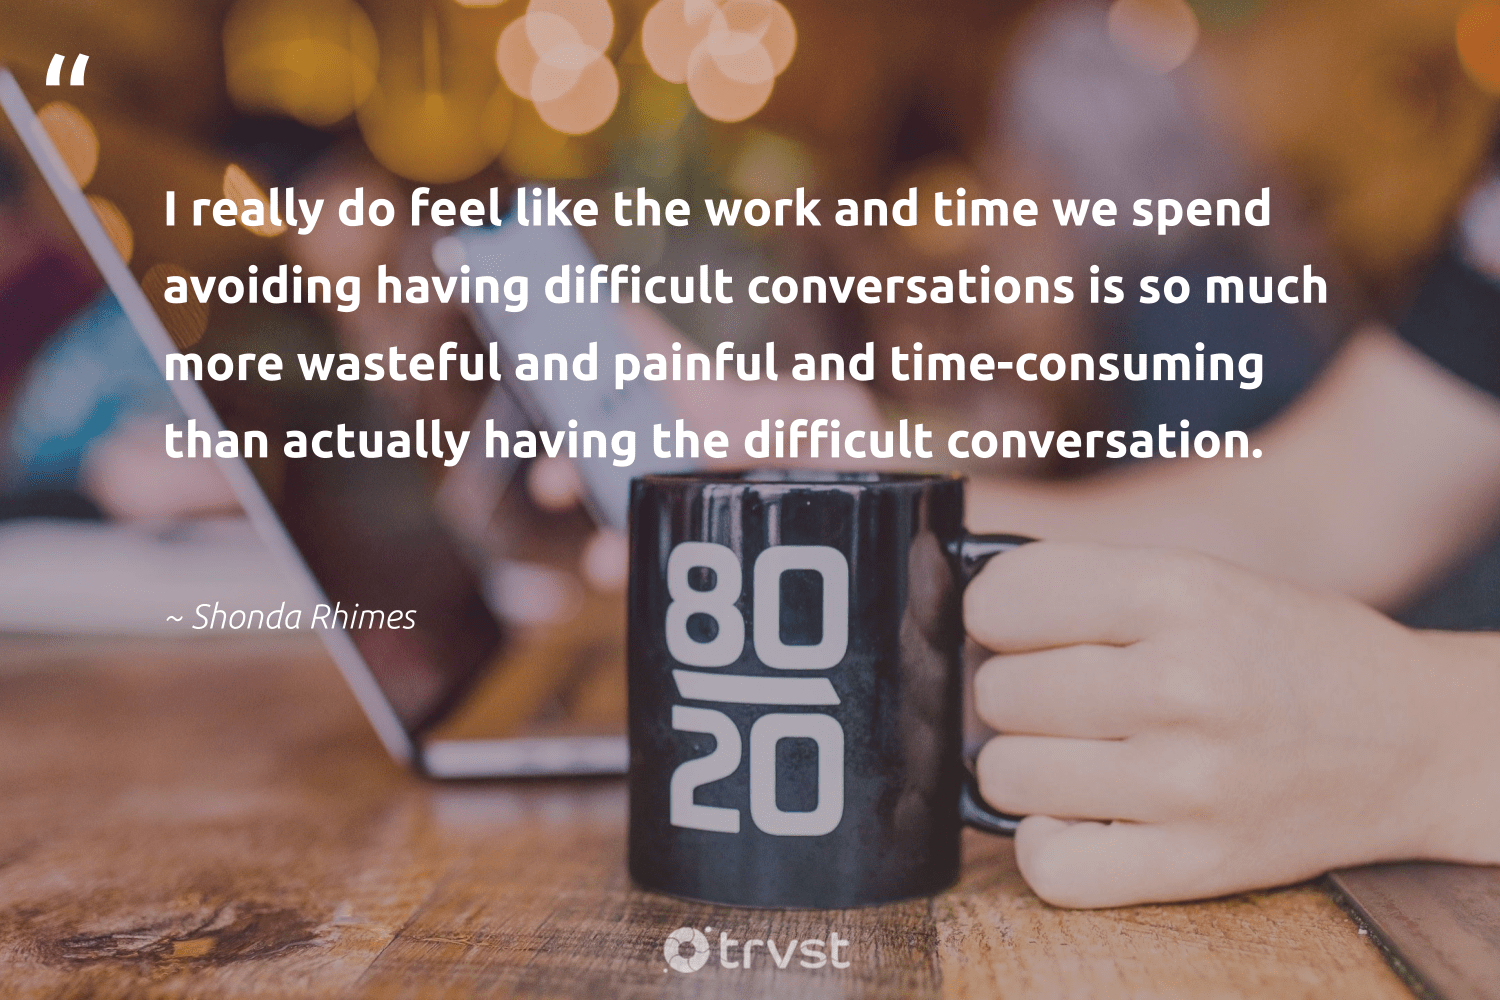 """""""I really do feel like the work and time we spend avoiding having difficult conversations is so much more wasteful and painful and time-consuming than actually having the difficult conversation.""""  - Shonda Rhimes #trvst #quotes #nevergiveup #takeaction #softskills #dotherightthing #futureofwork #socialimpact #begreat #collectiveaction #impact #gogreen"""